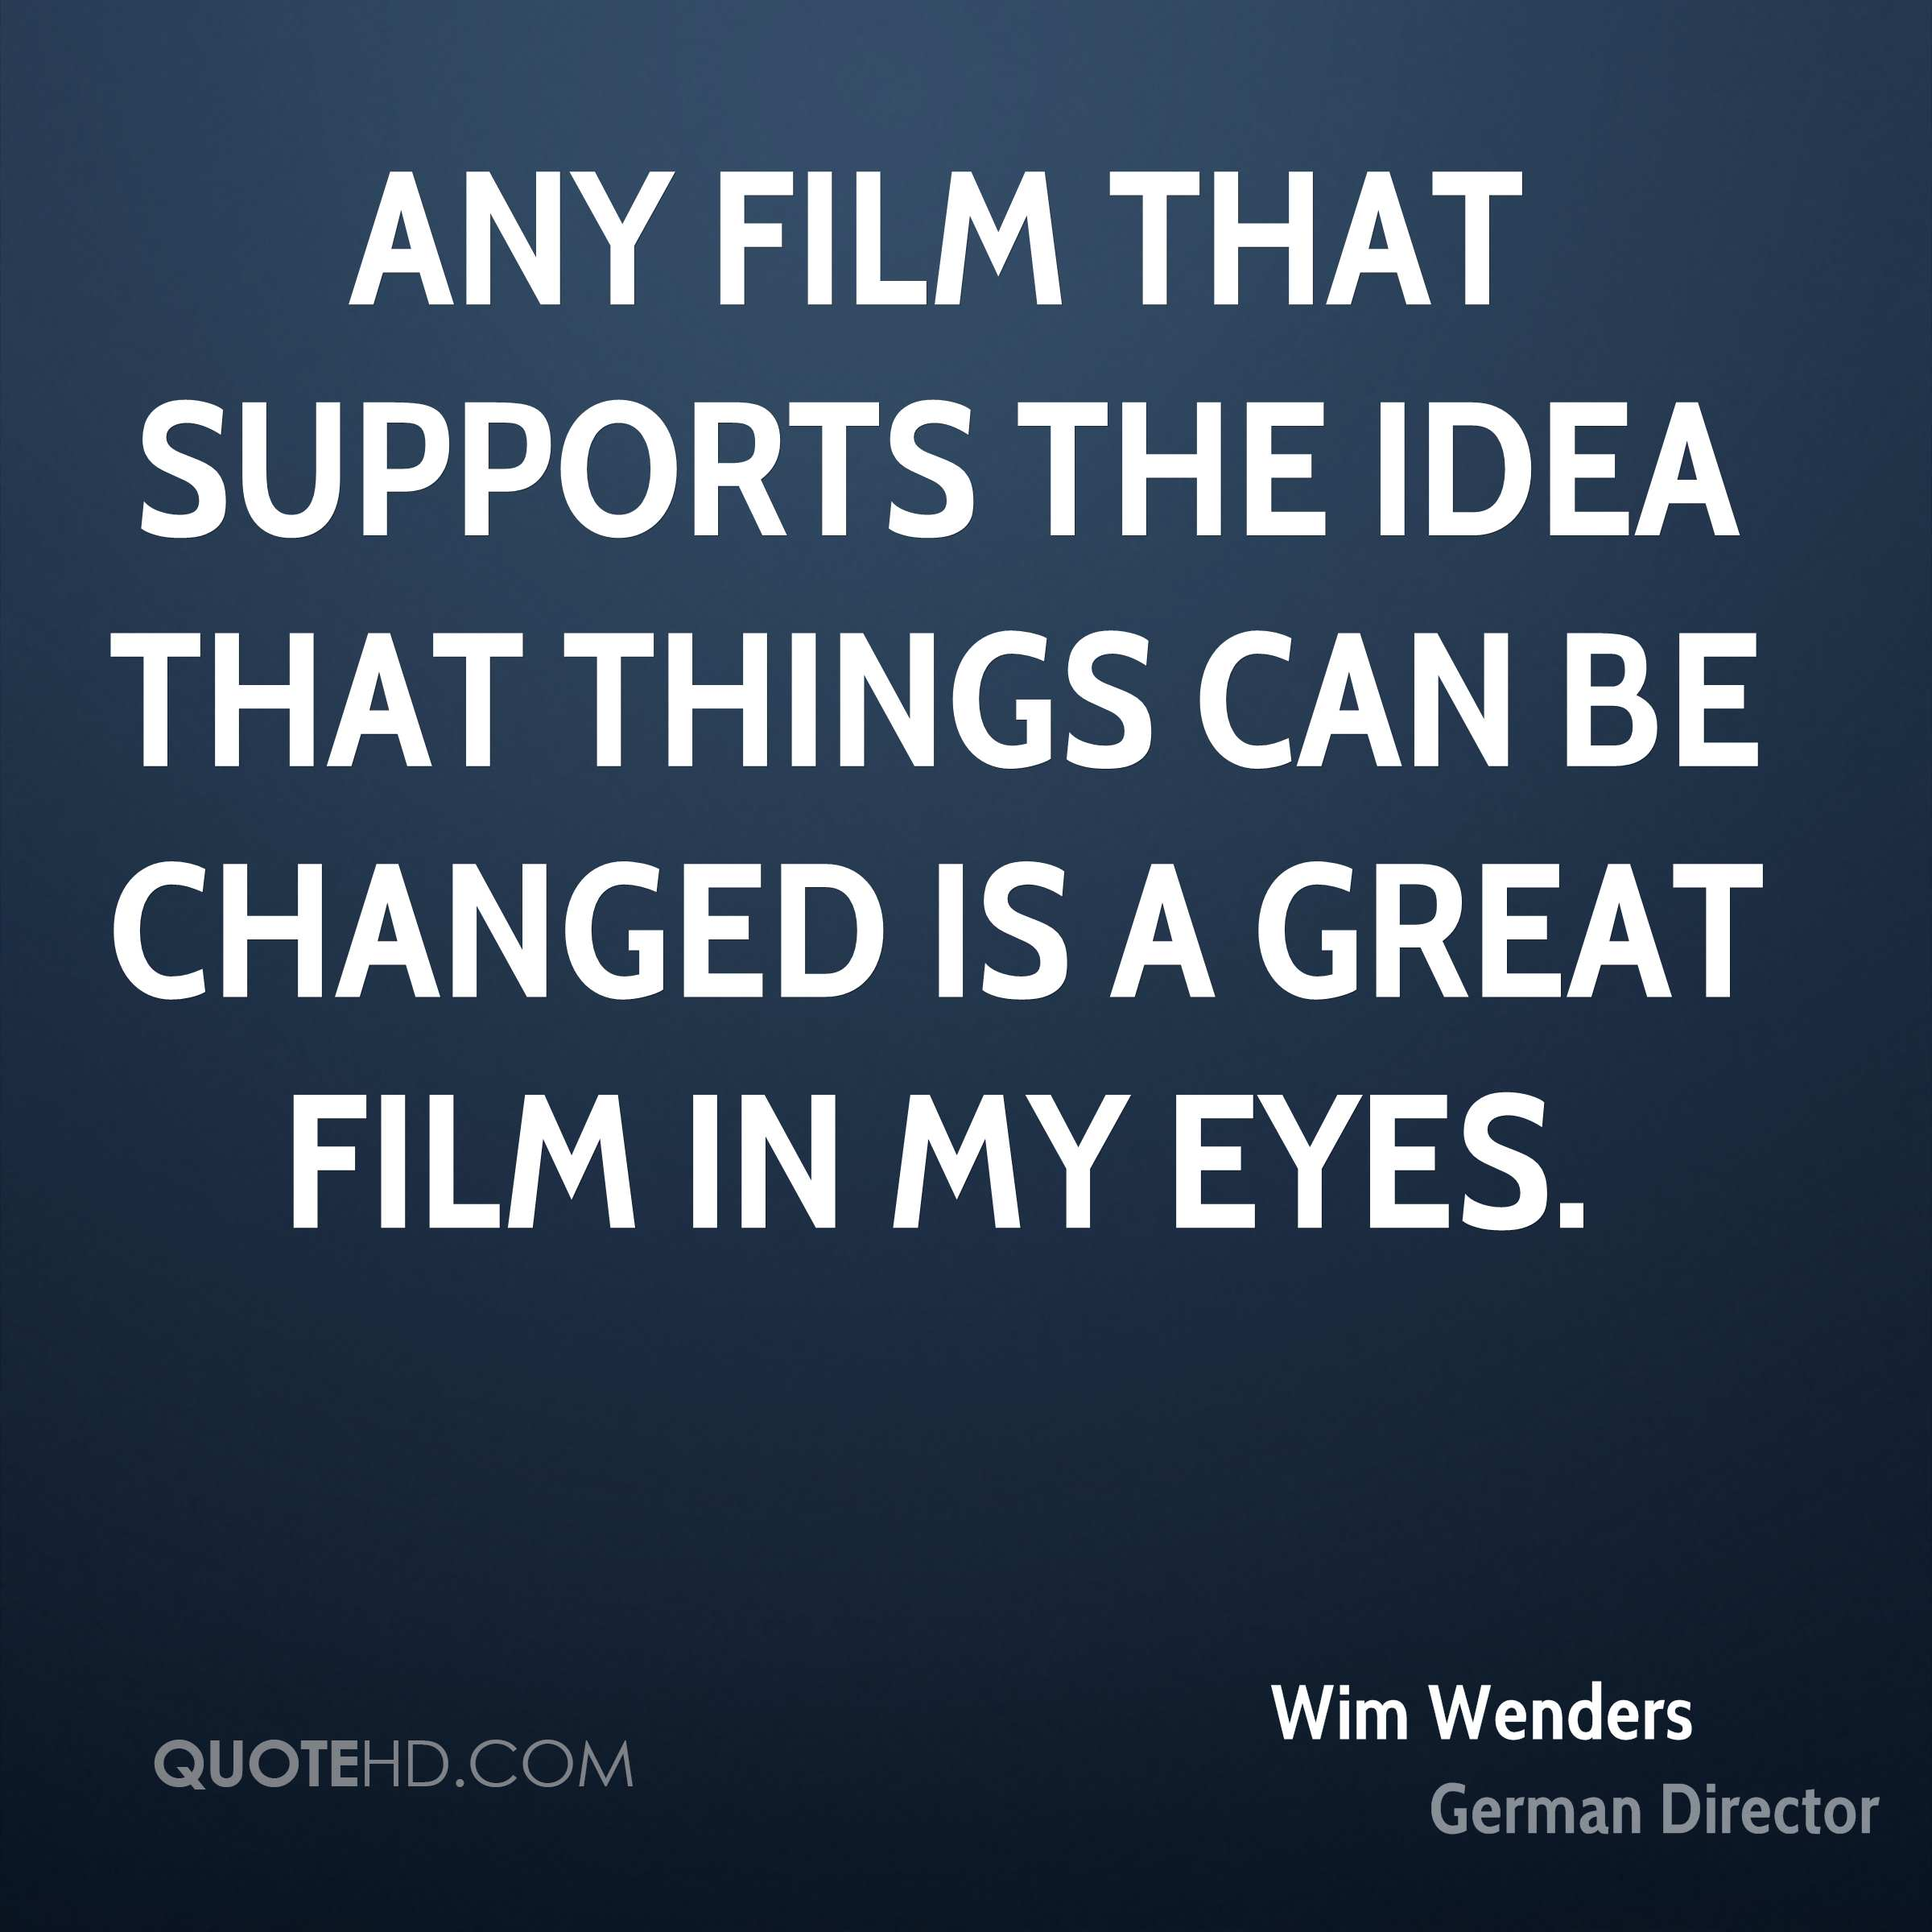 Any film that supports the idea that things can be changed is a great film in my eyes.